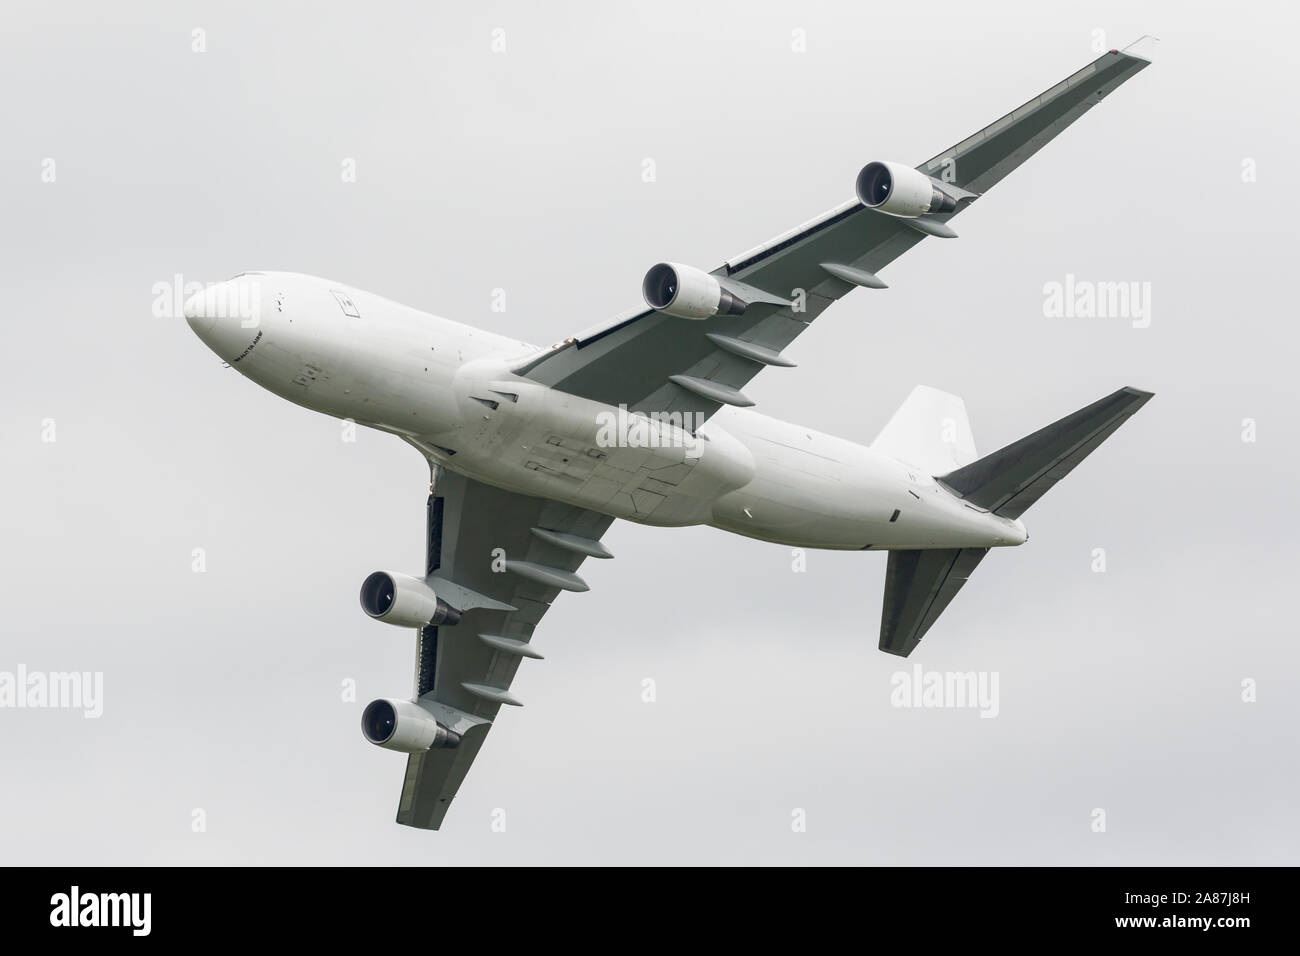 YPSILANTI, MICHIGAN / USA - August 25, 2018: A Boeing 747 owned by Kalitta Air performs a flyby at the 2018 Thunder Over Michigan Airshow. Stock Photo